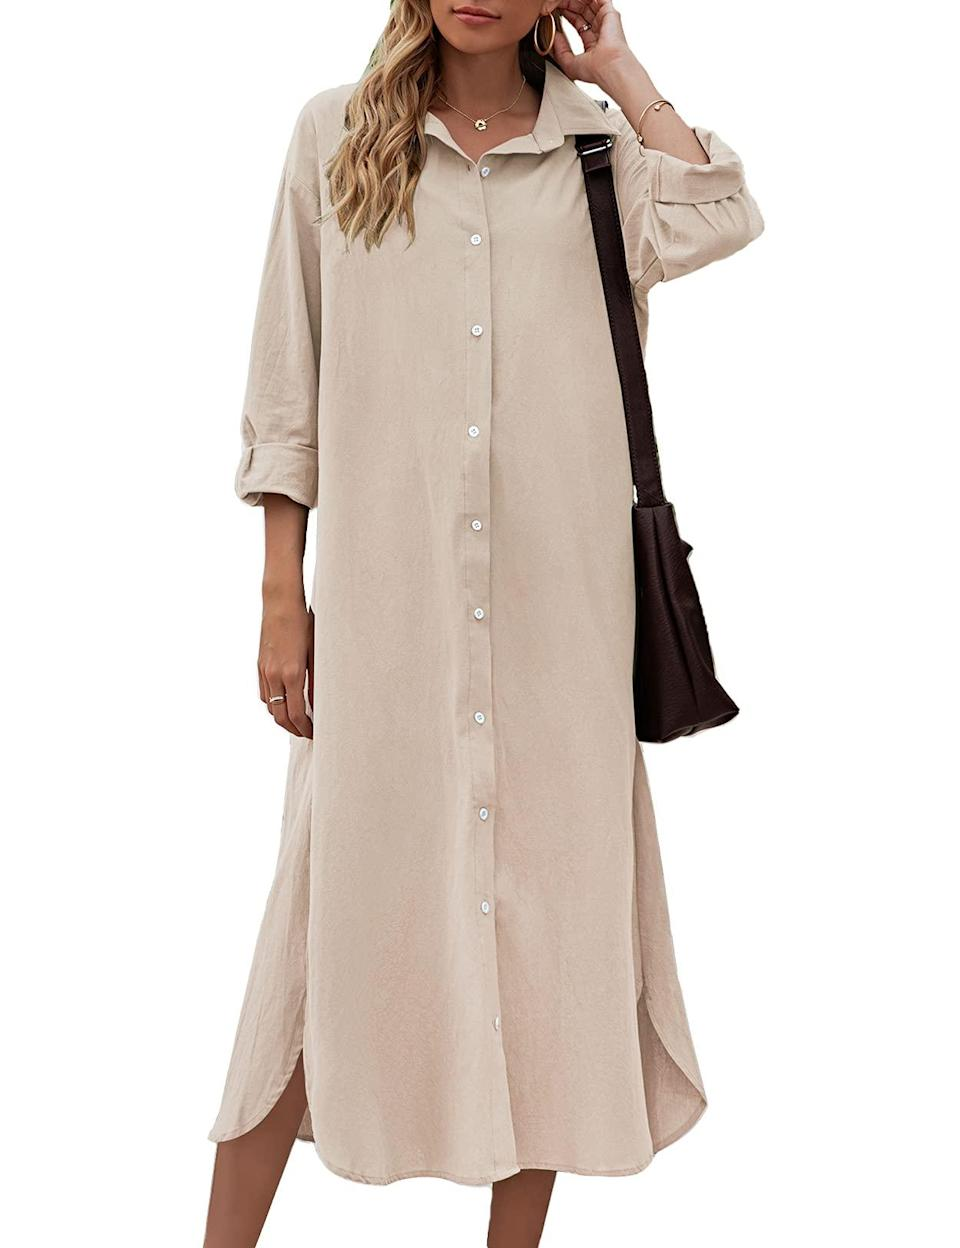 """<h2>Button-Front Dresses</h2><br>Not only are button-down dresses classic, but they're also customizable! You can button it up less or more depending on your preferences or occasion. <br><br><strong>Sopliagon</strong> Shirt Dress, $, available at <a href=""""https://amzn.to/3tTvyvb"""" rel=""""nofollow noopener"""" target=""""_blank"""" data-ylk=""""slk:Amazon"""" class=""""link rapid-noclick-resp"""">Amazon</a>"""